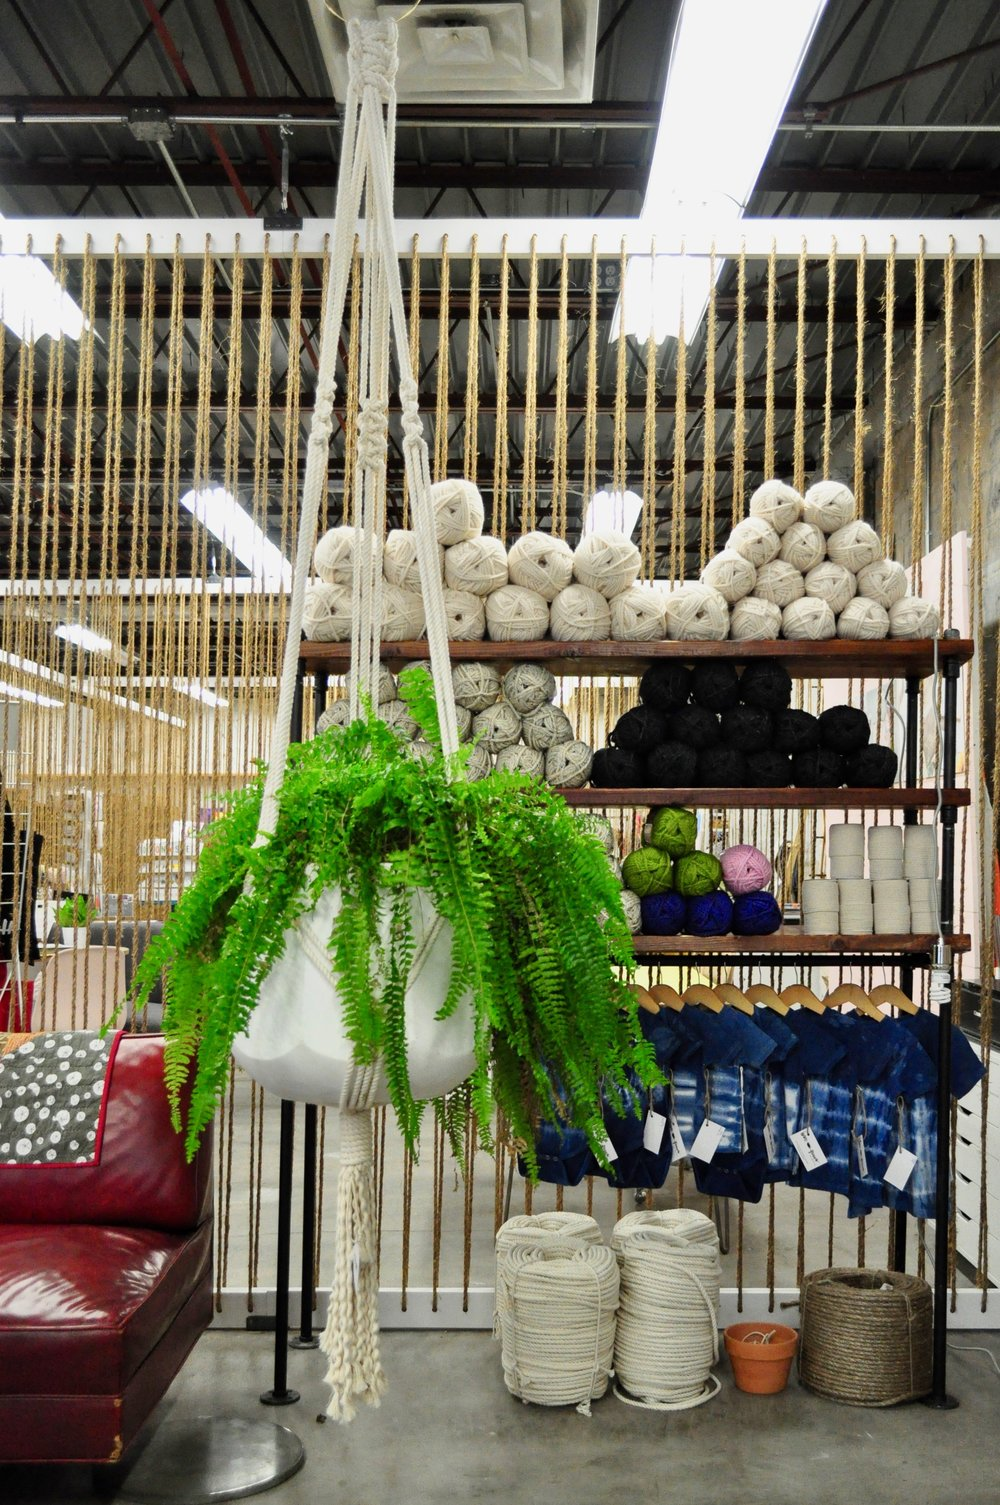 Giant macrame hanging planter patio decor ideas.jpg